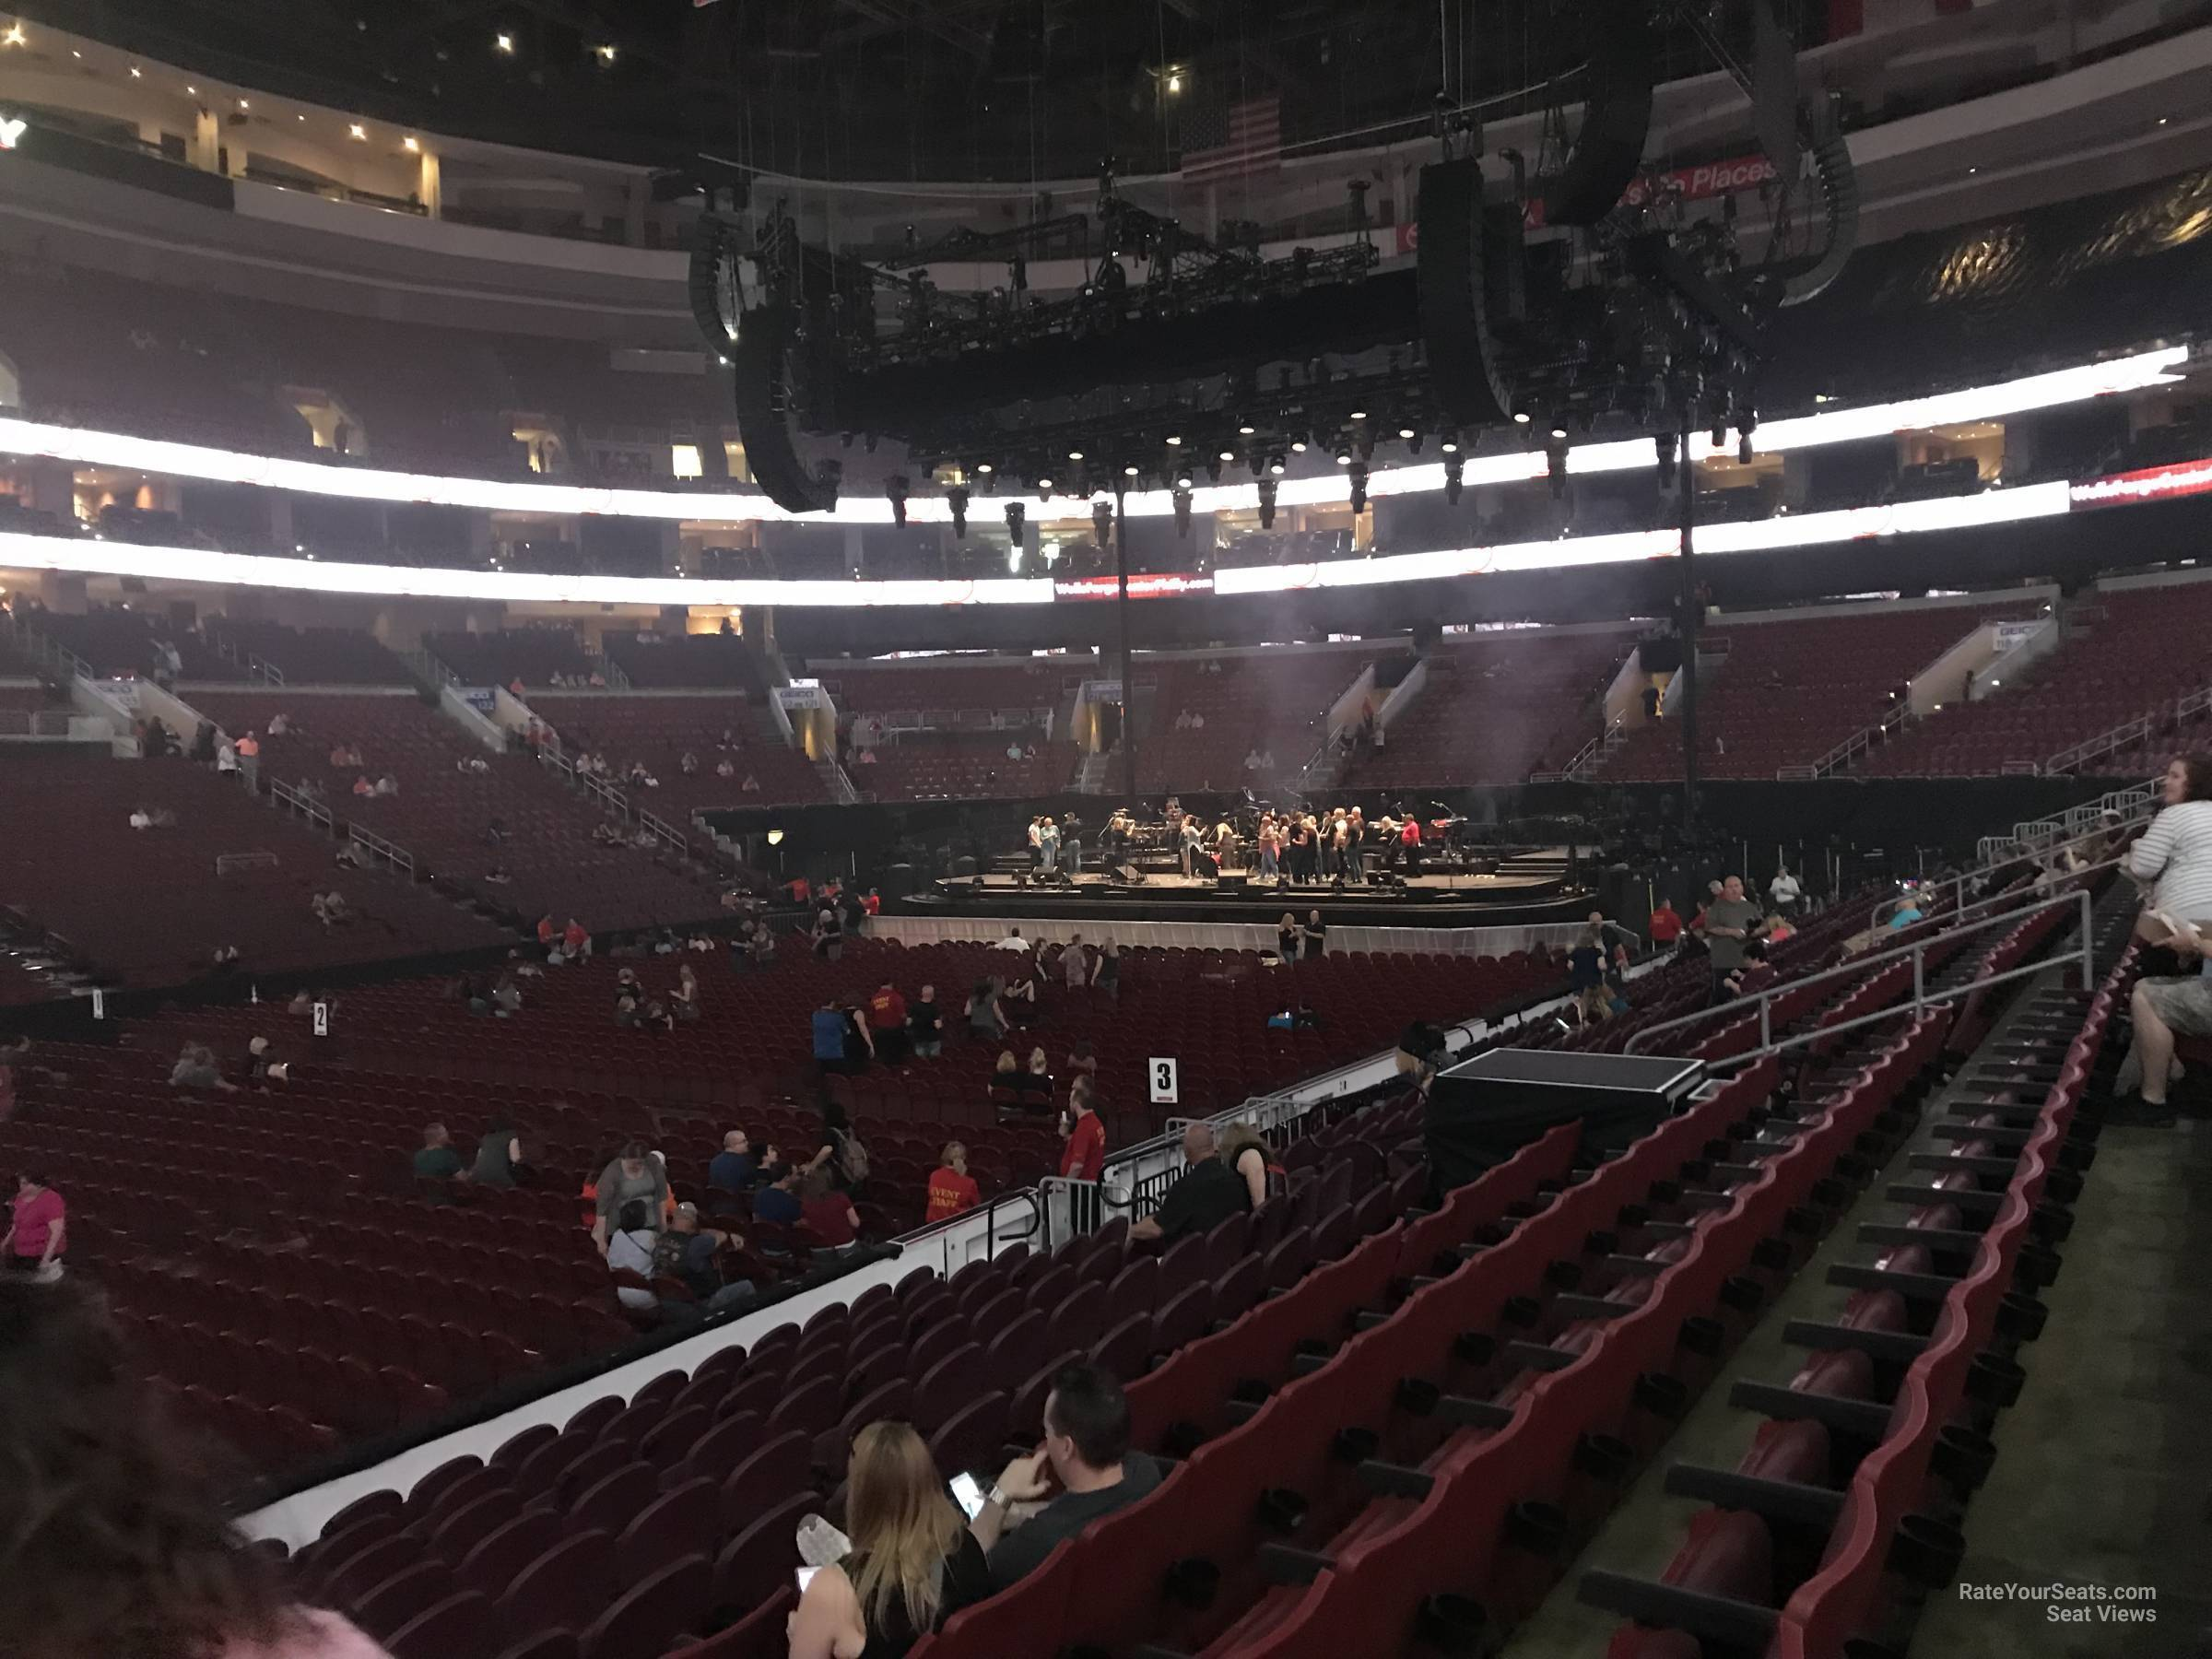 Section 111 At Wells Fargo Center For Concerts Rateyourseats Com